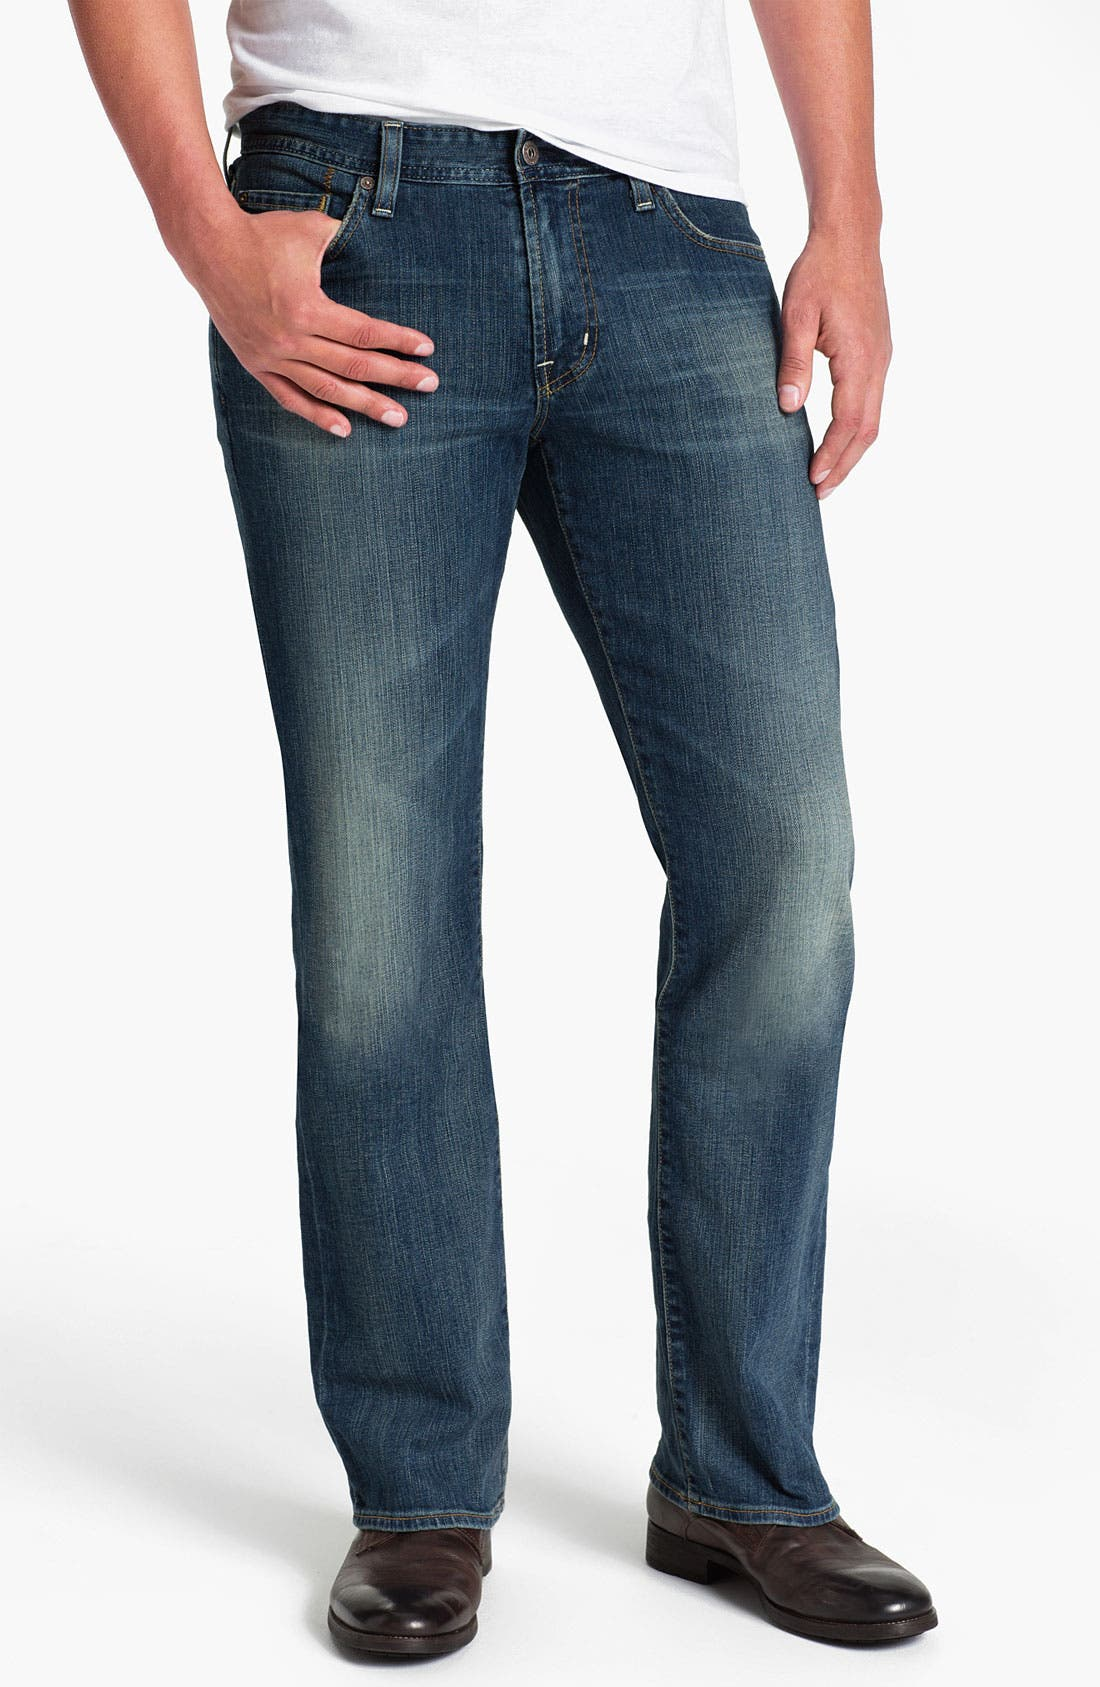 Alternate Image 1 Selected - AG Jeans 'Regent' Bootcut Jeans (Abbott)